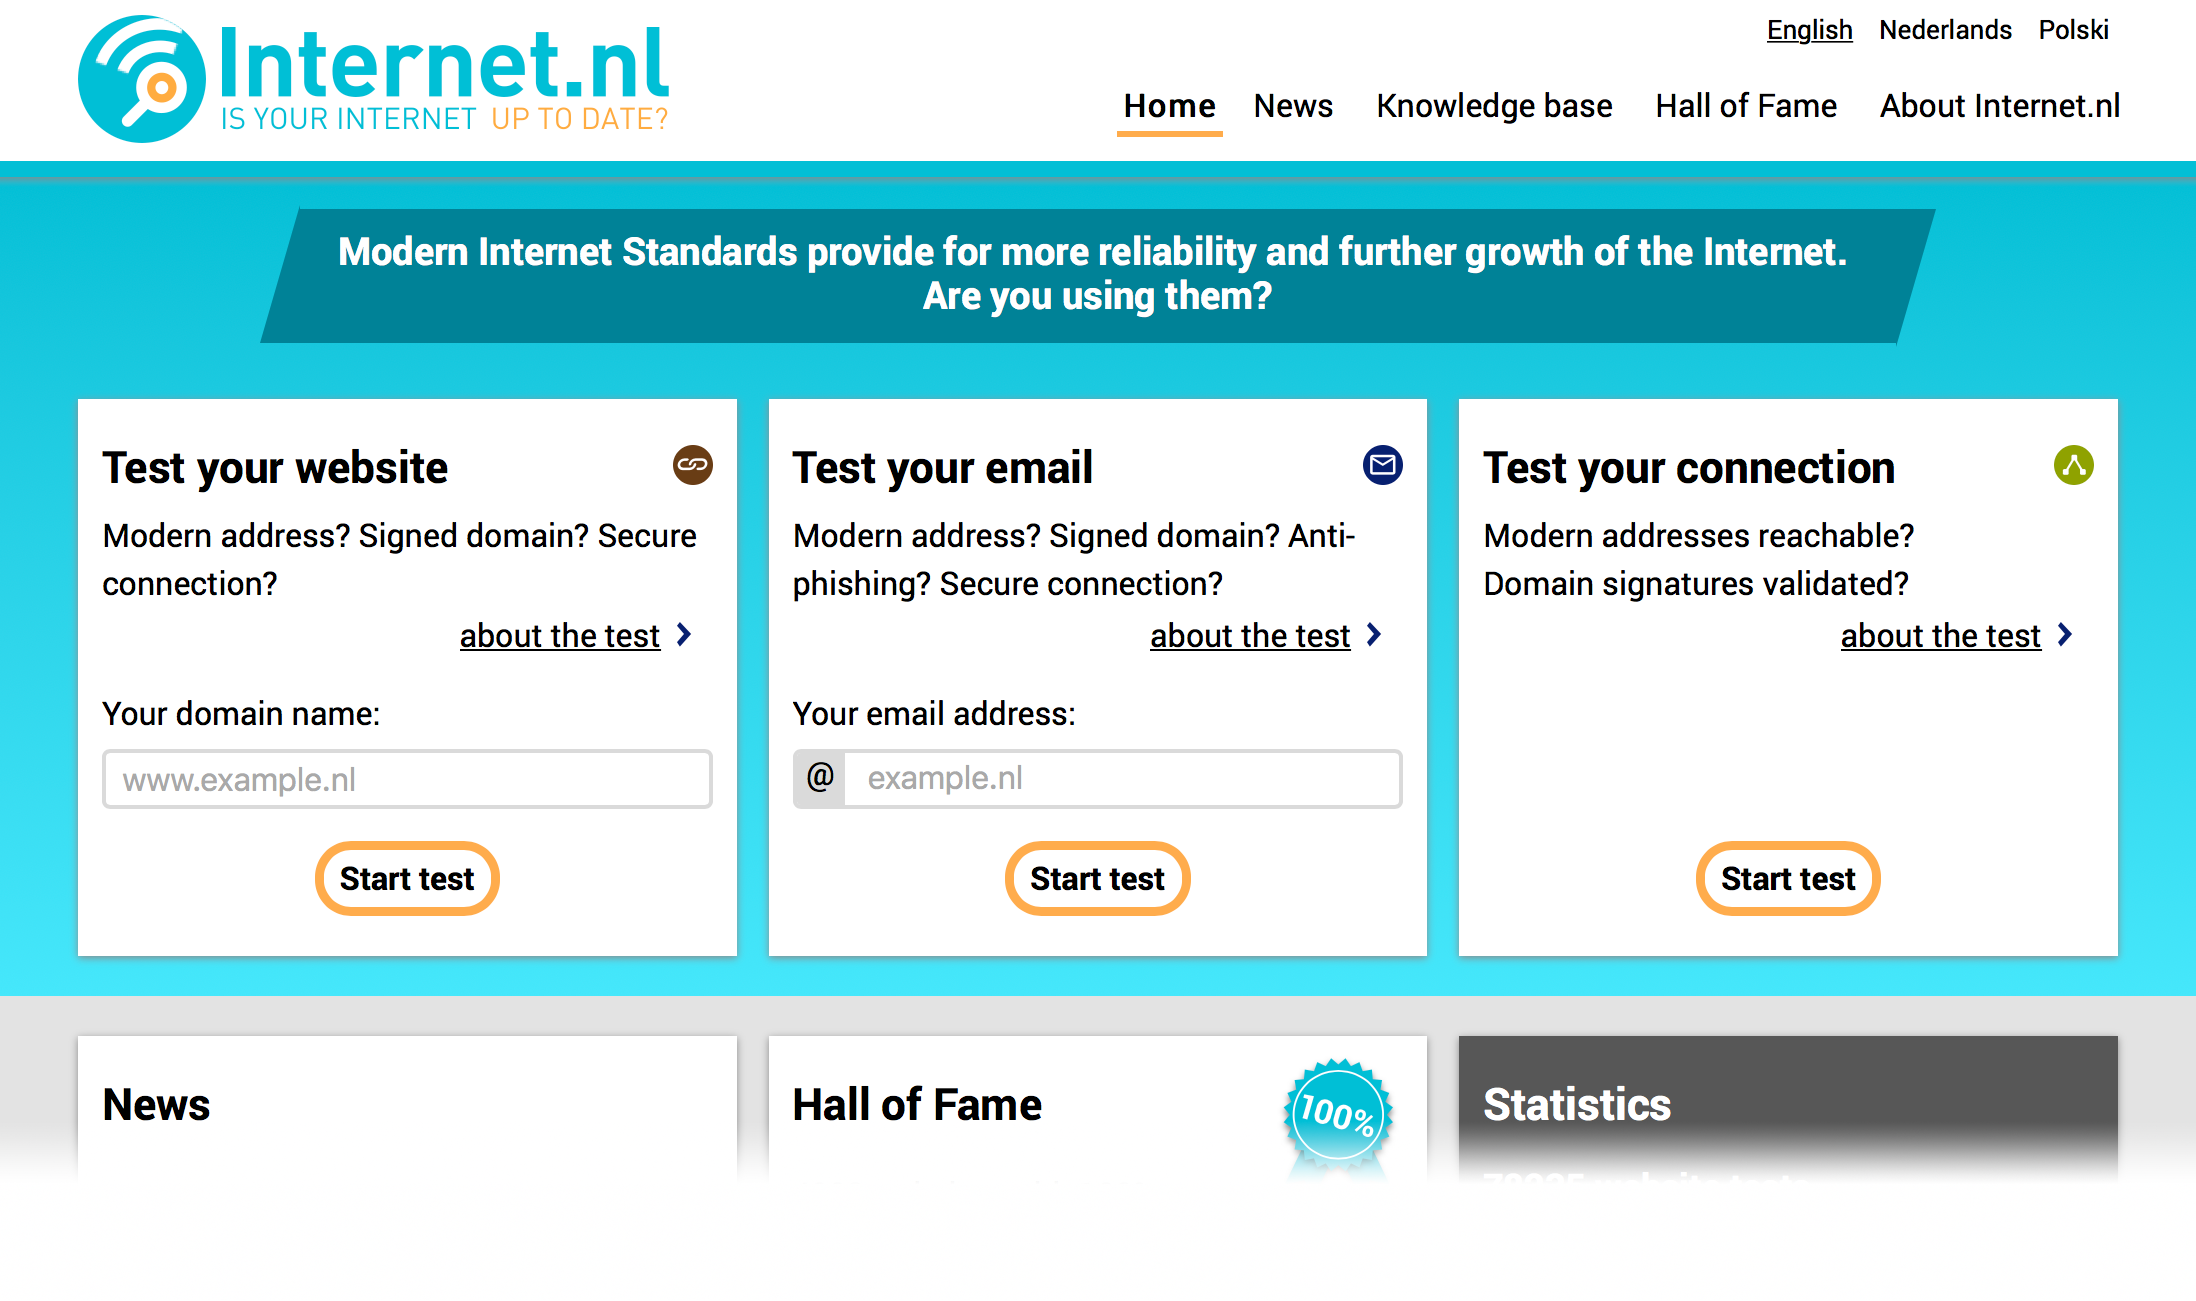 Home page of Internet.nl